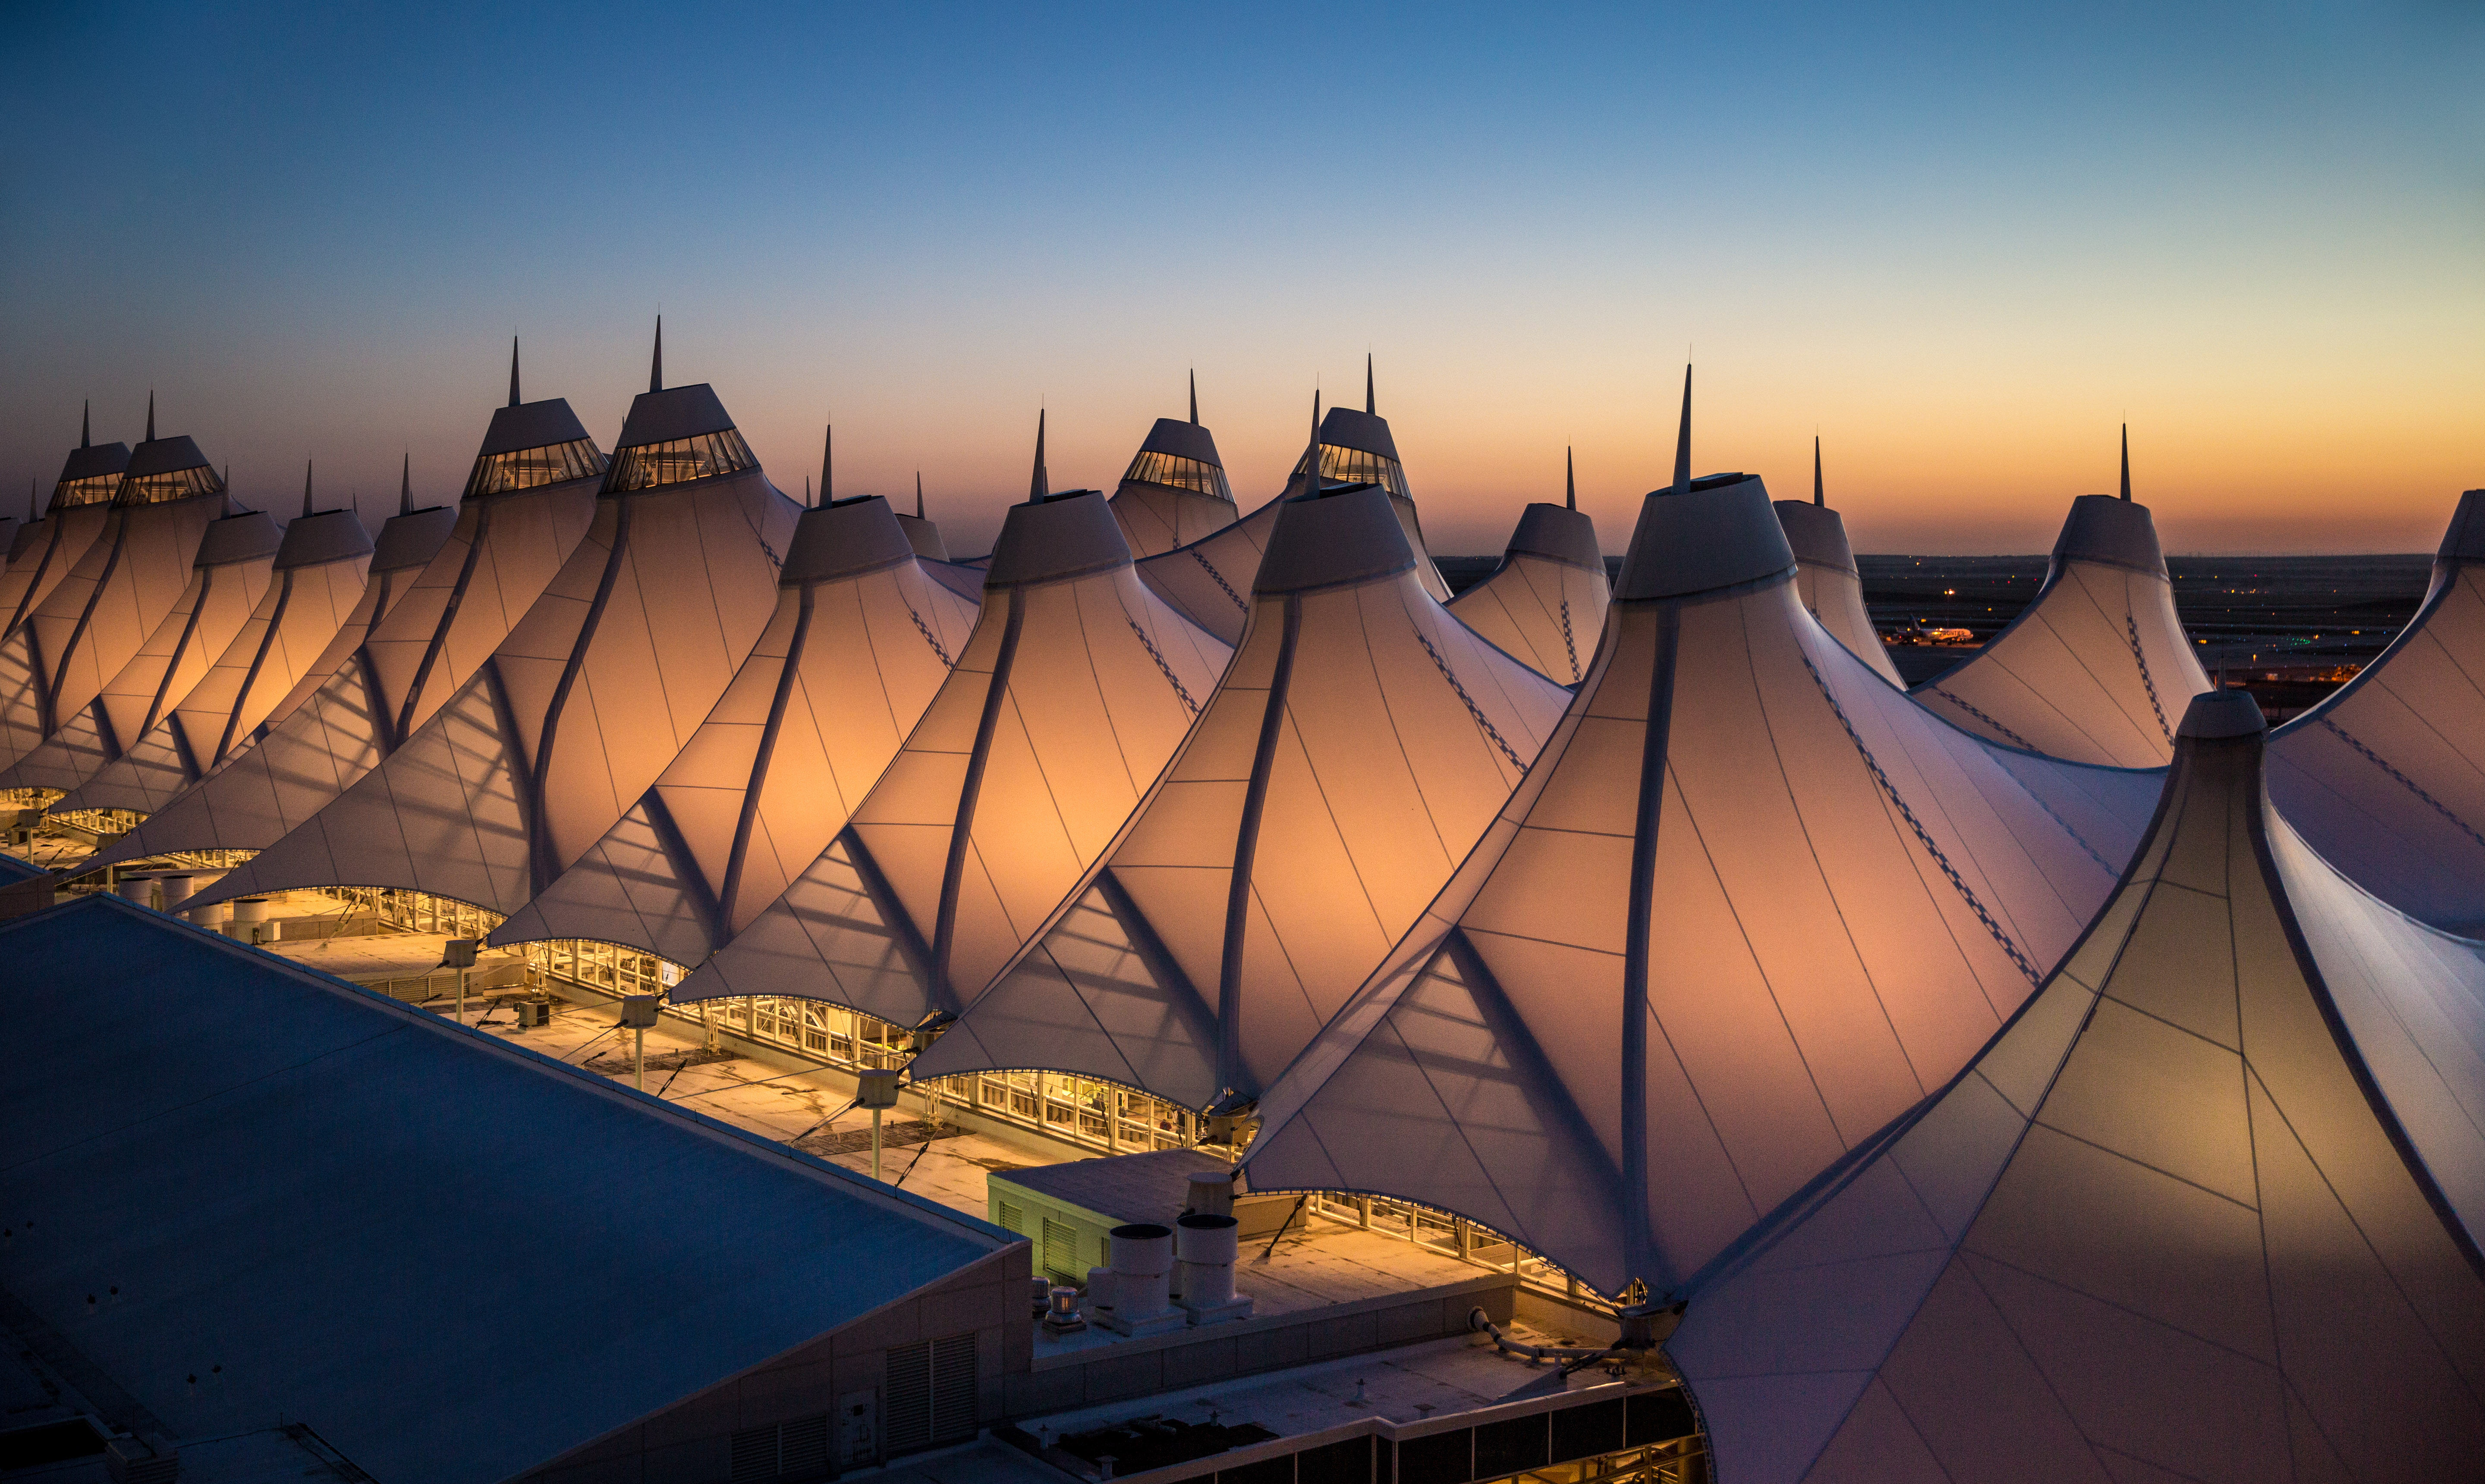 Airport Architecture The Most Beautiful Airports In The World - 10 most beautiful airports in the world